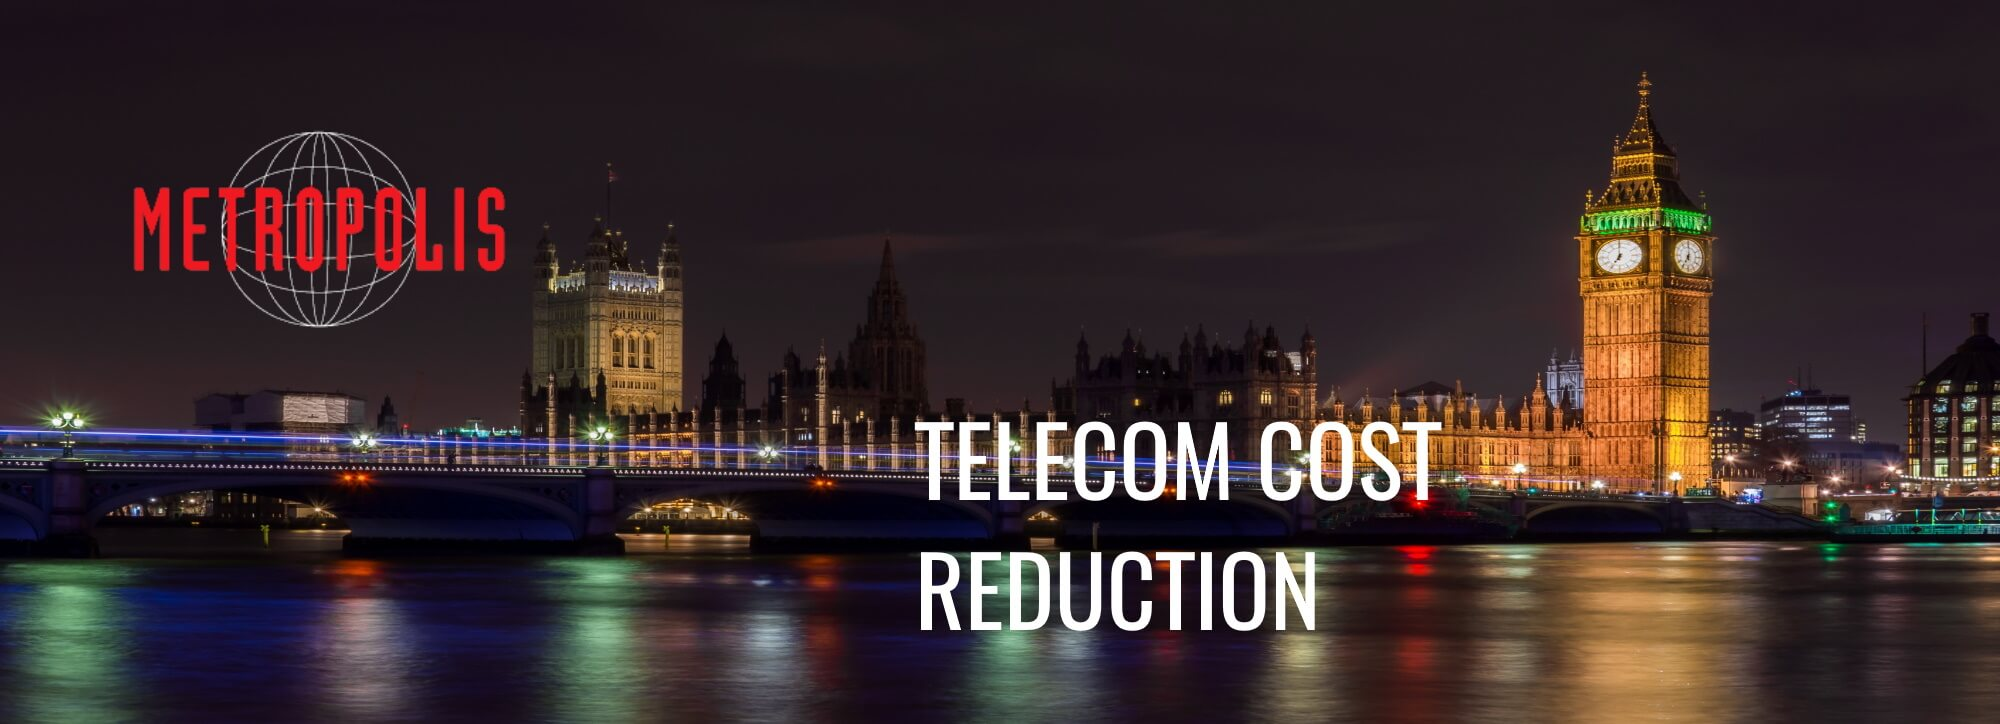 Telecom cost reduction